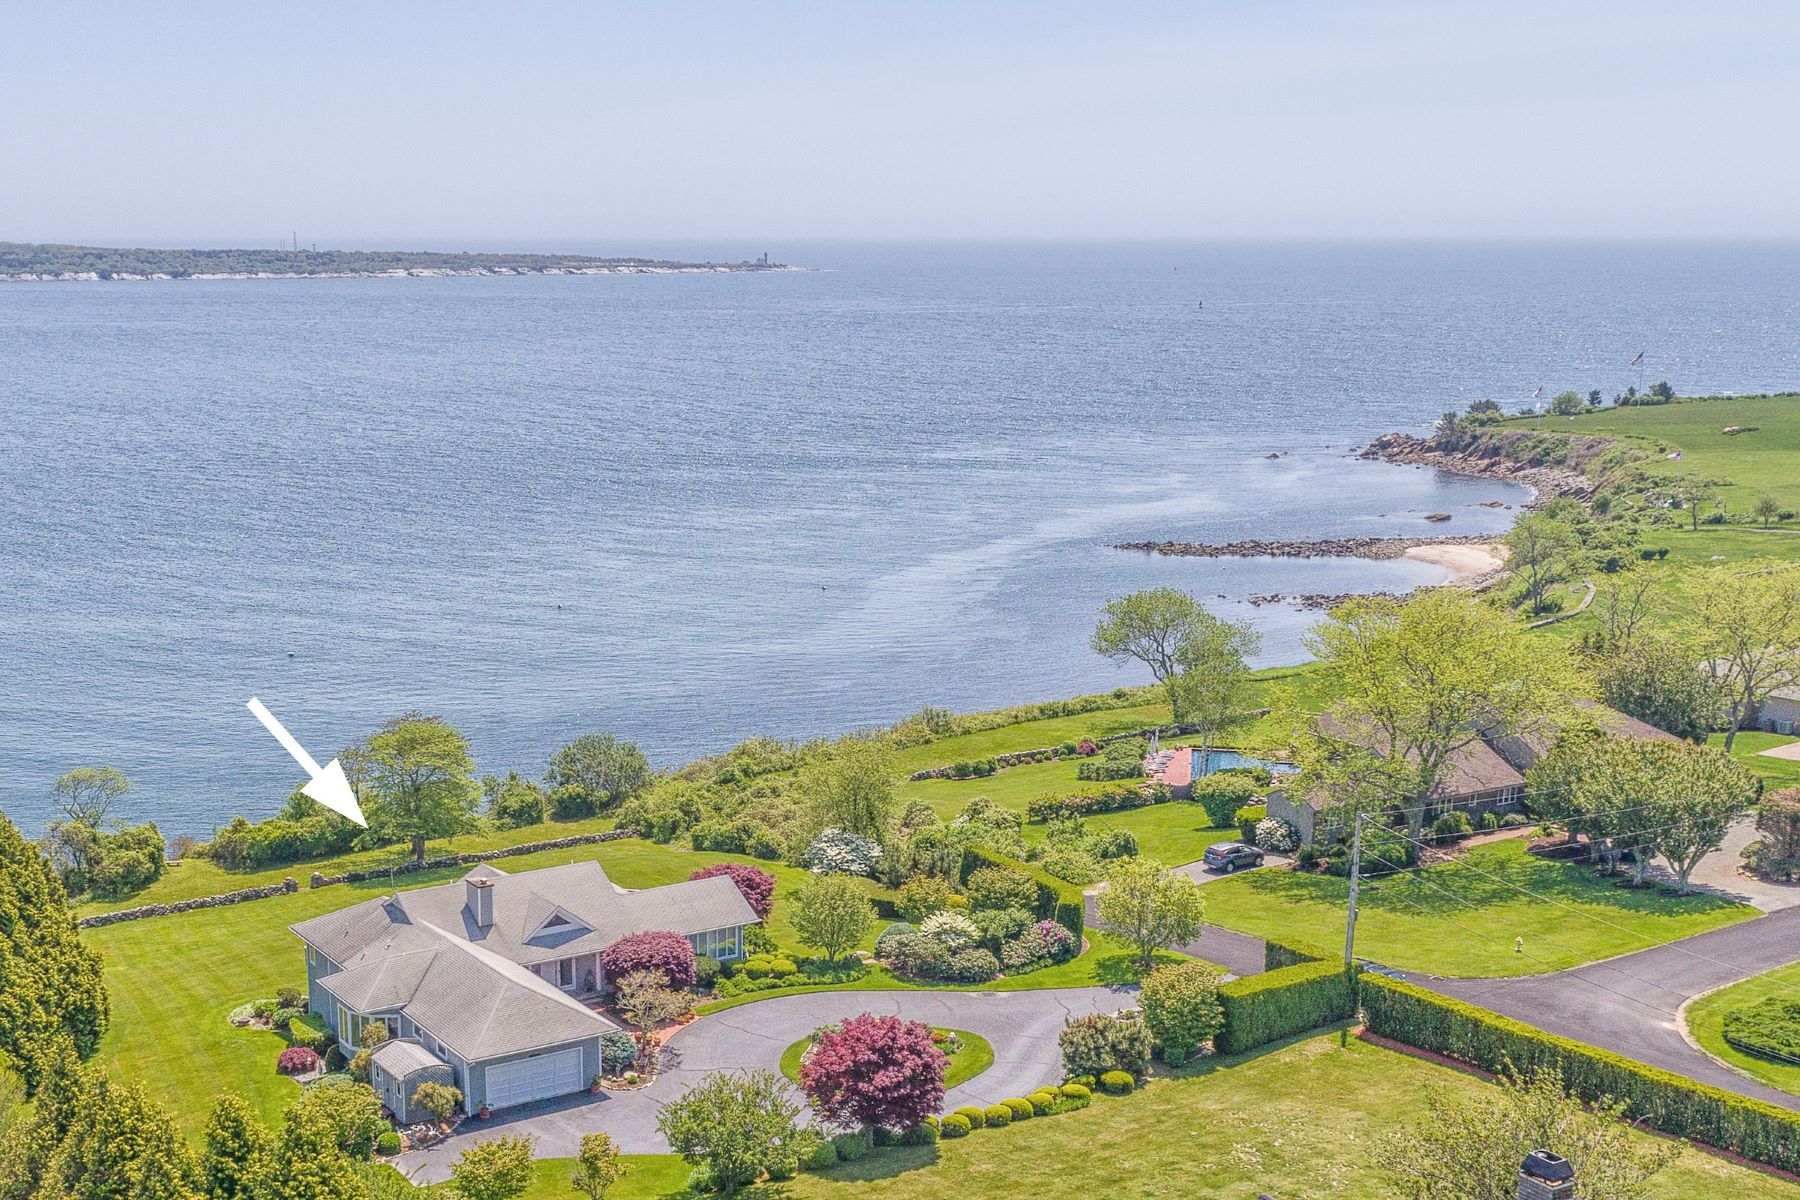 single family homes for Sale at 60 North Cliff Dr, Narragansett, RI Narragansett, Rhode Island 02882 United States